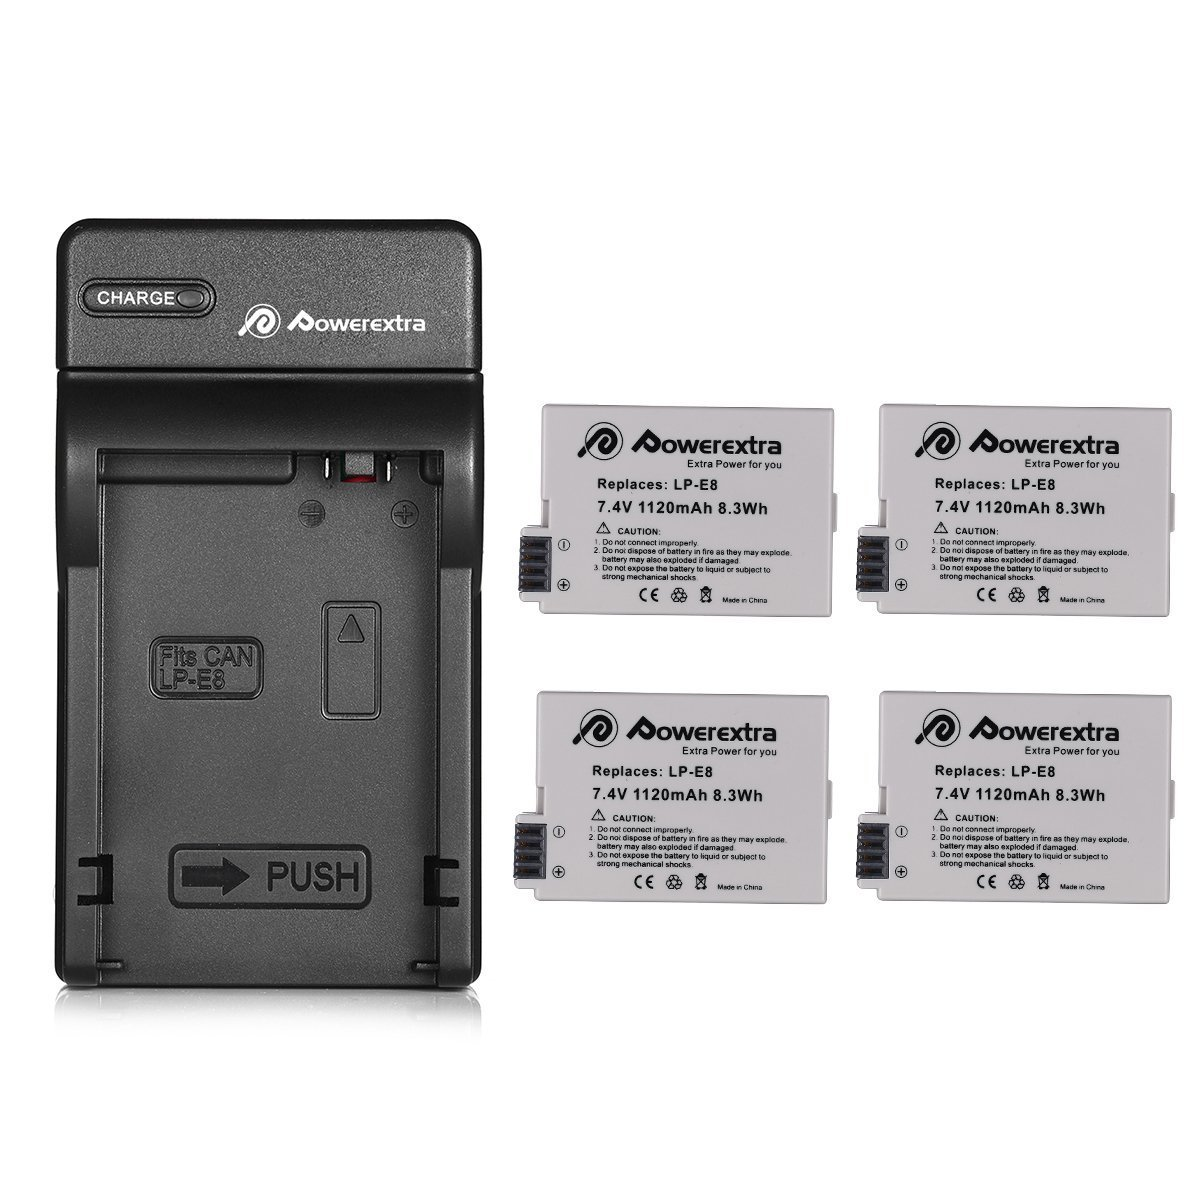 Powerextra 4 Pack Replacement Canon LP-E8 Battery Compatible with Canon Rebel T5i T4i T3i T2i DSLR Digital Camera with Charger for Canon LP-E8 Replacement of LC-E8E by Powerextra